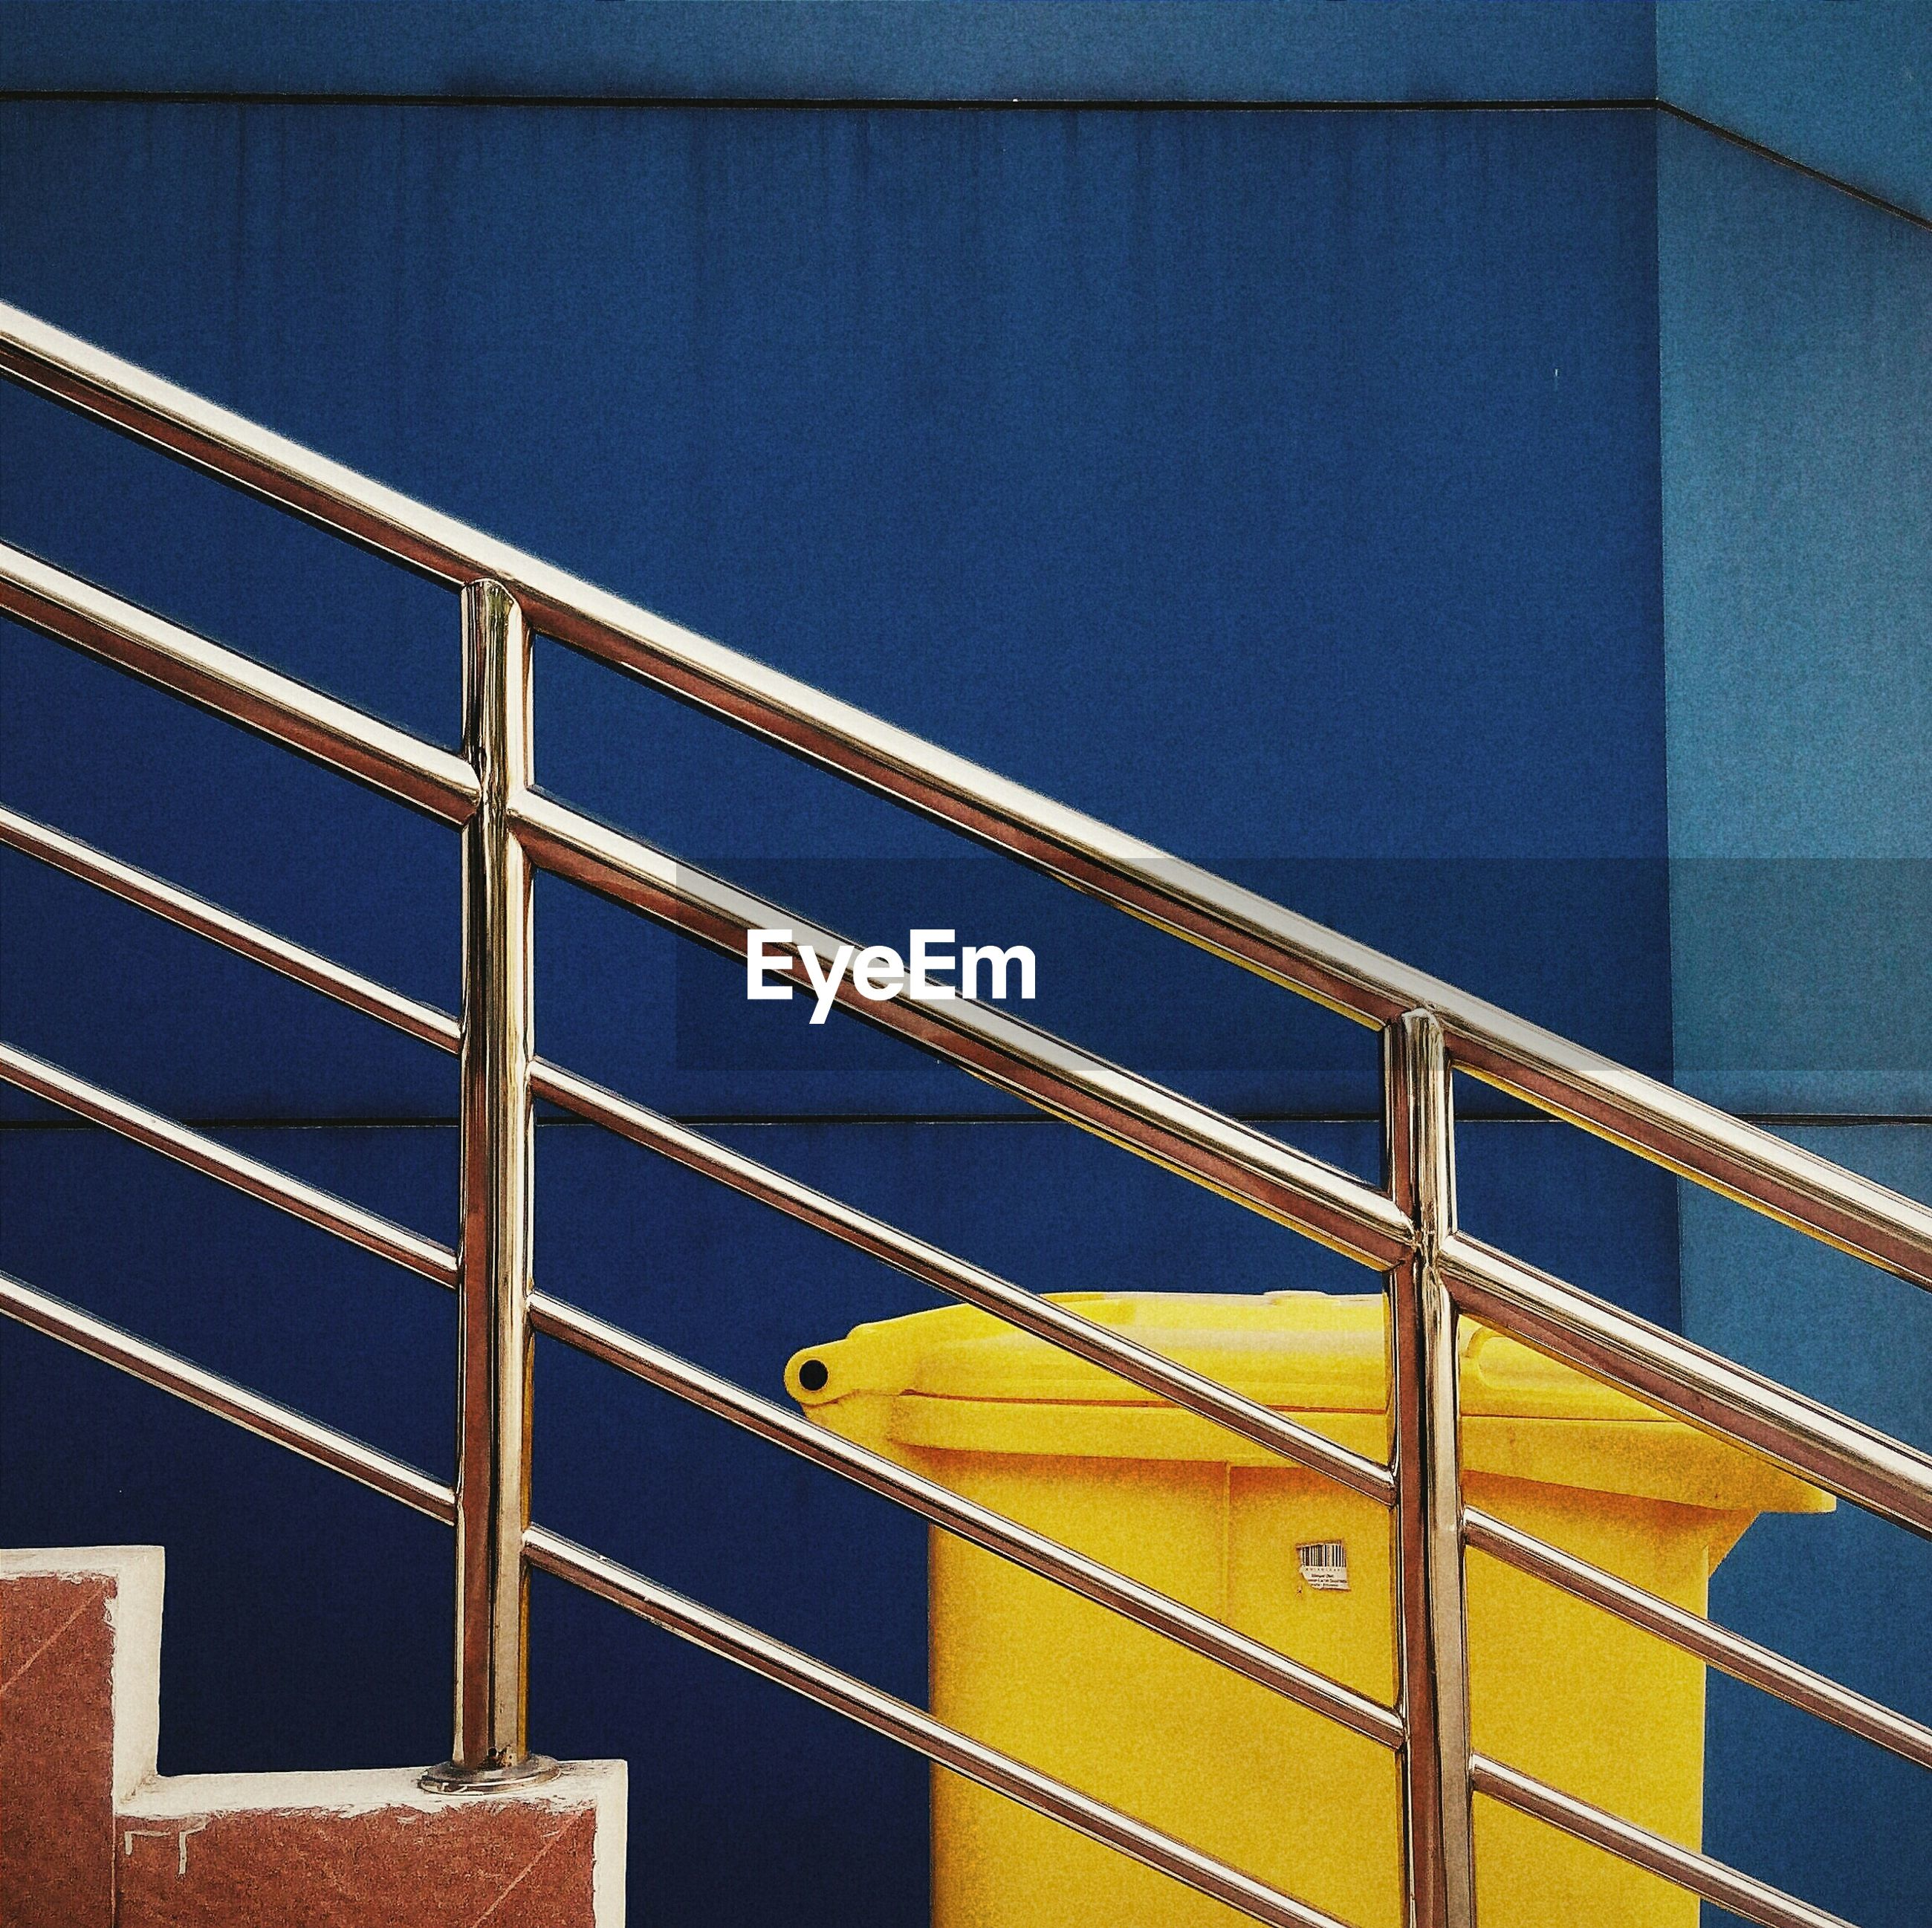 architecture, built structure, yellow, blue, building exterior, low angle view, pattern, wall - building feature, railing, metal, full frame, building, no people, wall, indoors, backgrounds, safety, day, repetition